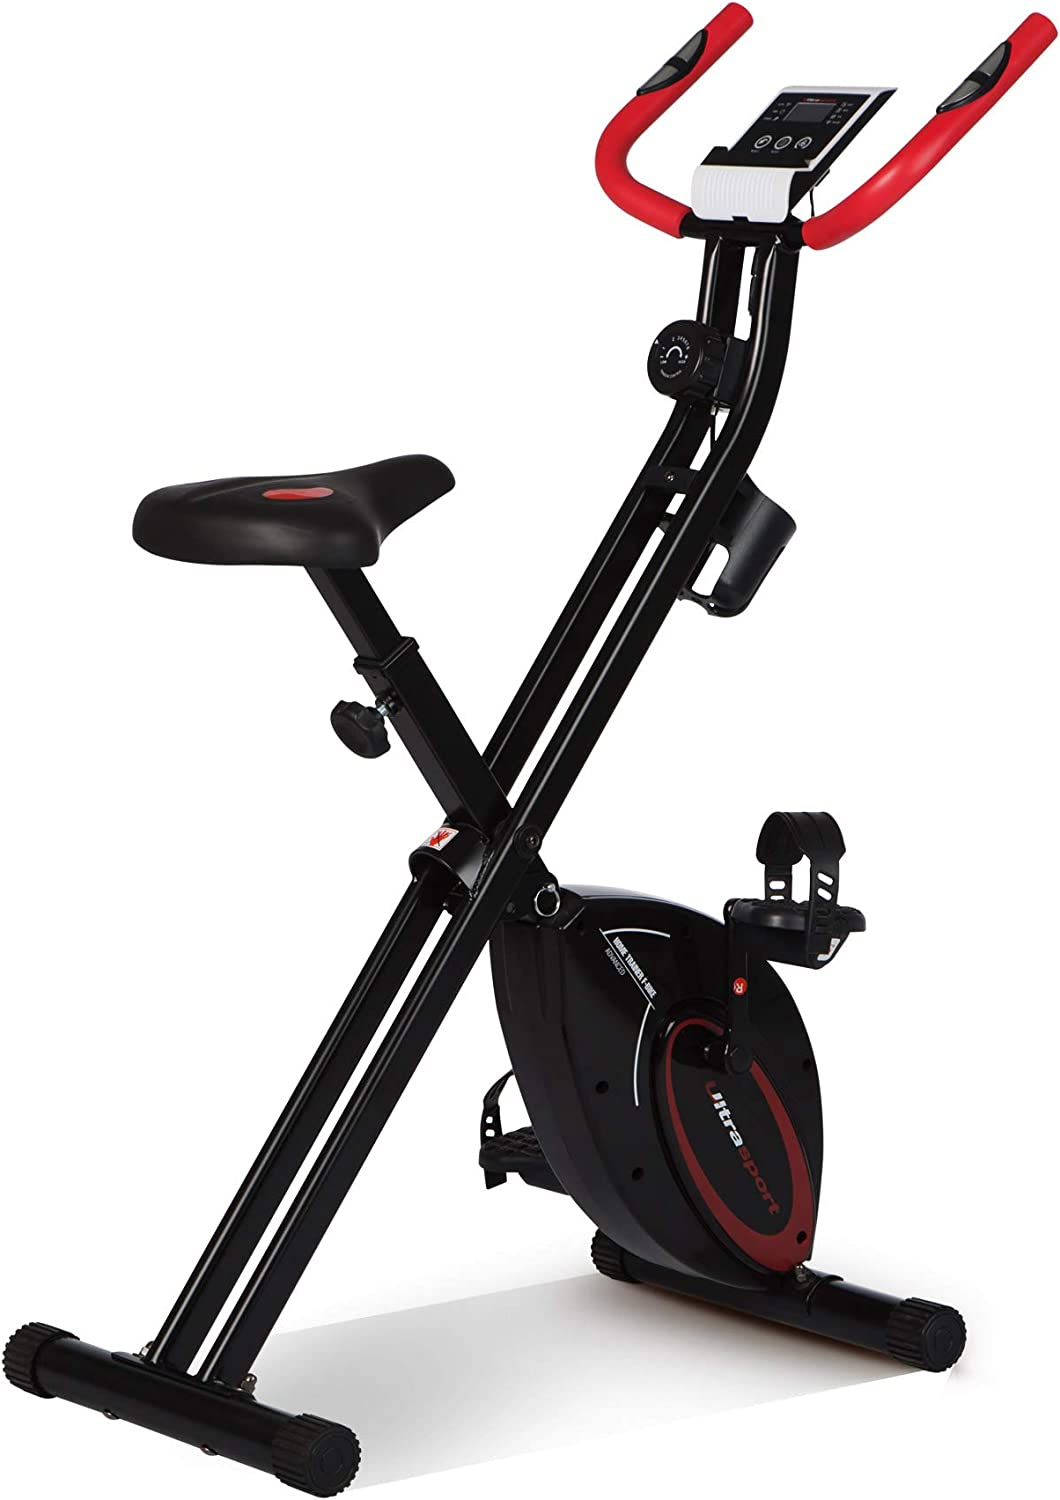 Ultrasport F-Bike Design Bicicleta estática de fitness plegable ...